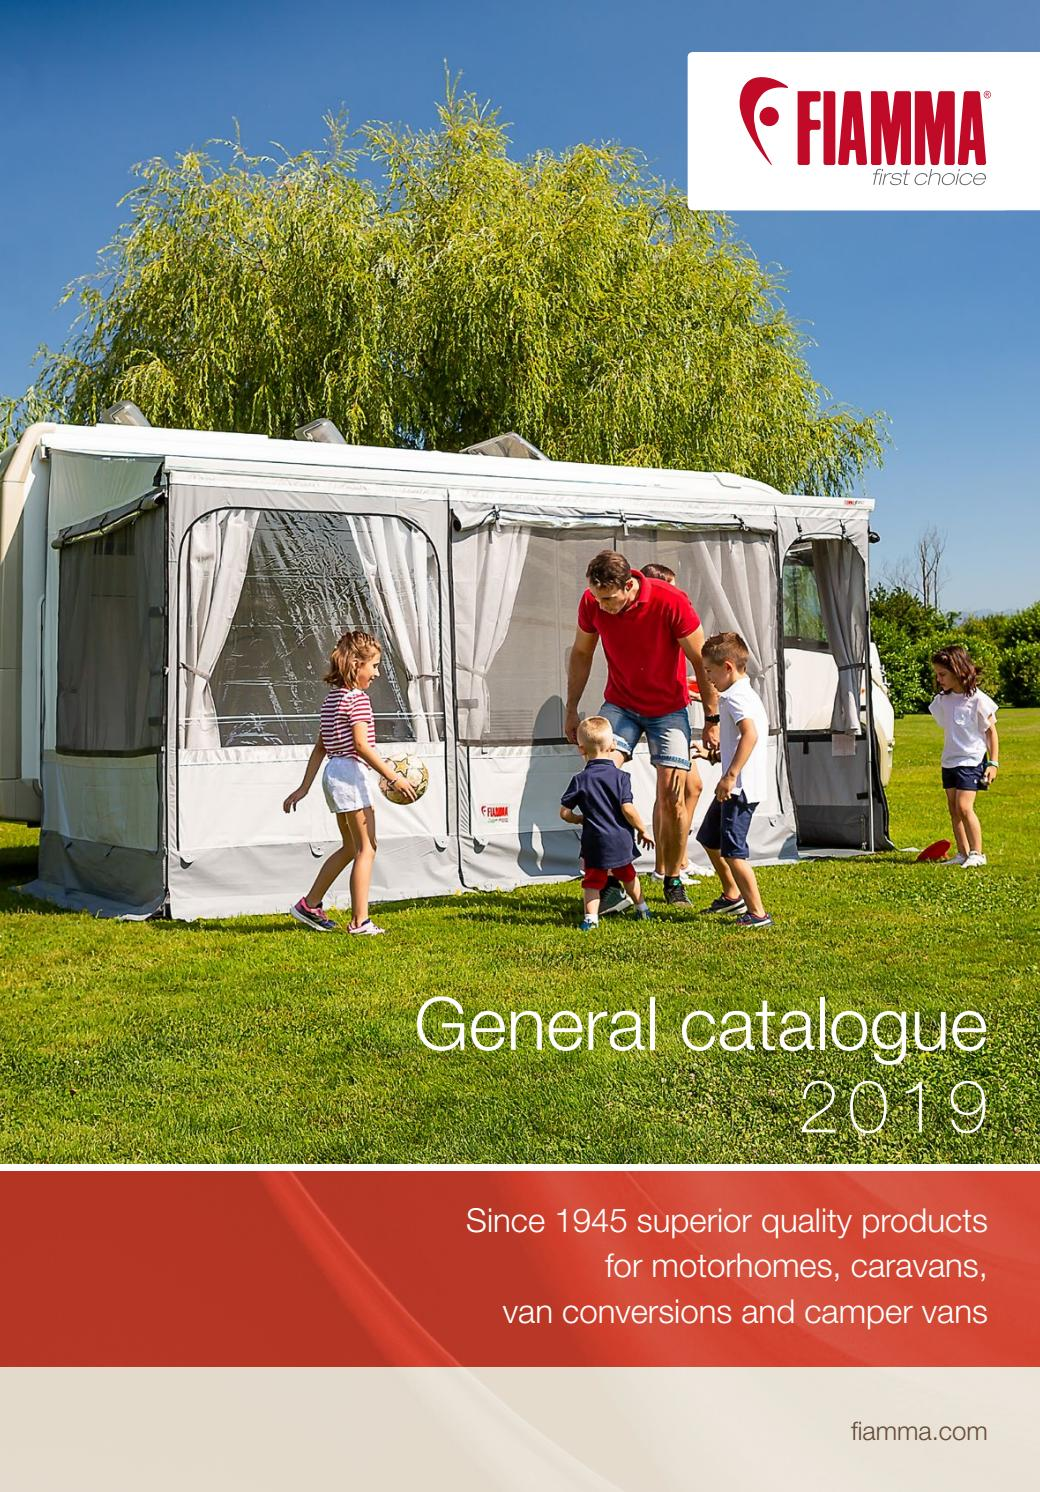 General Catalogue - Fiamma 2019 EN